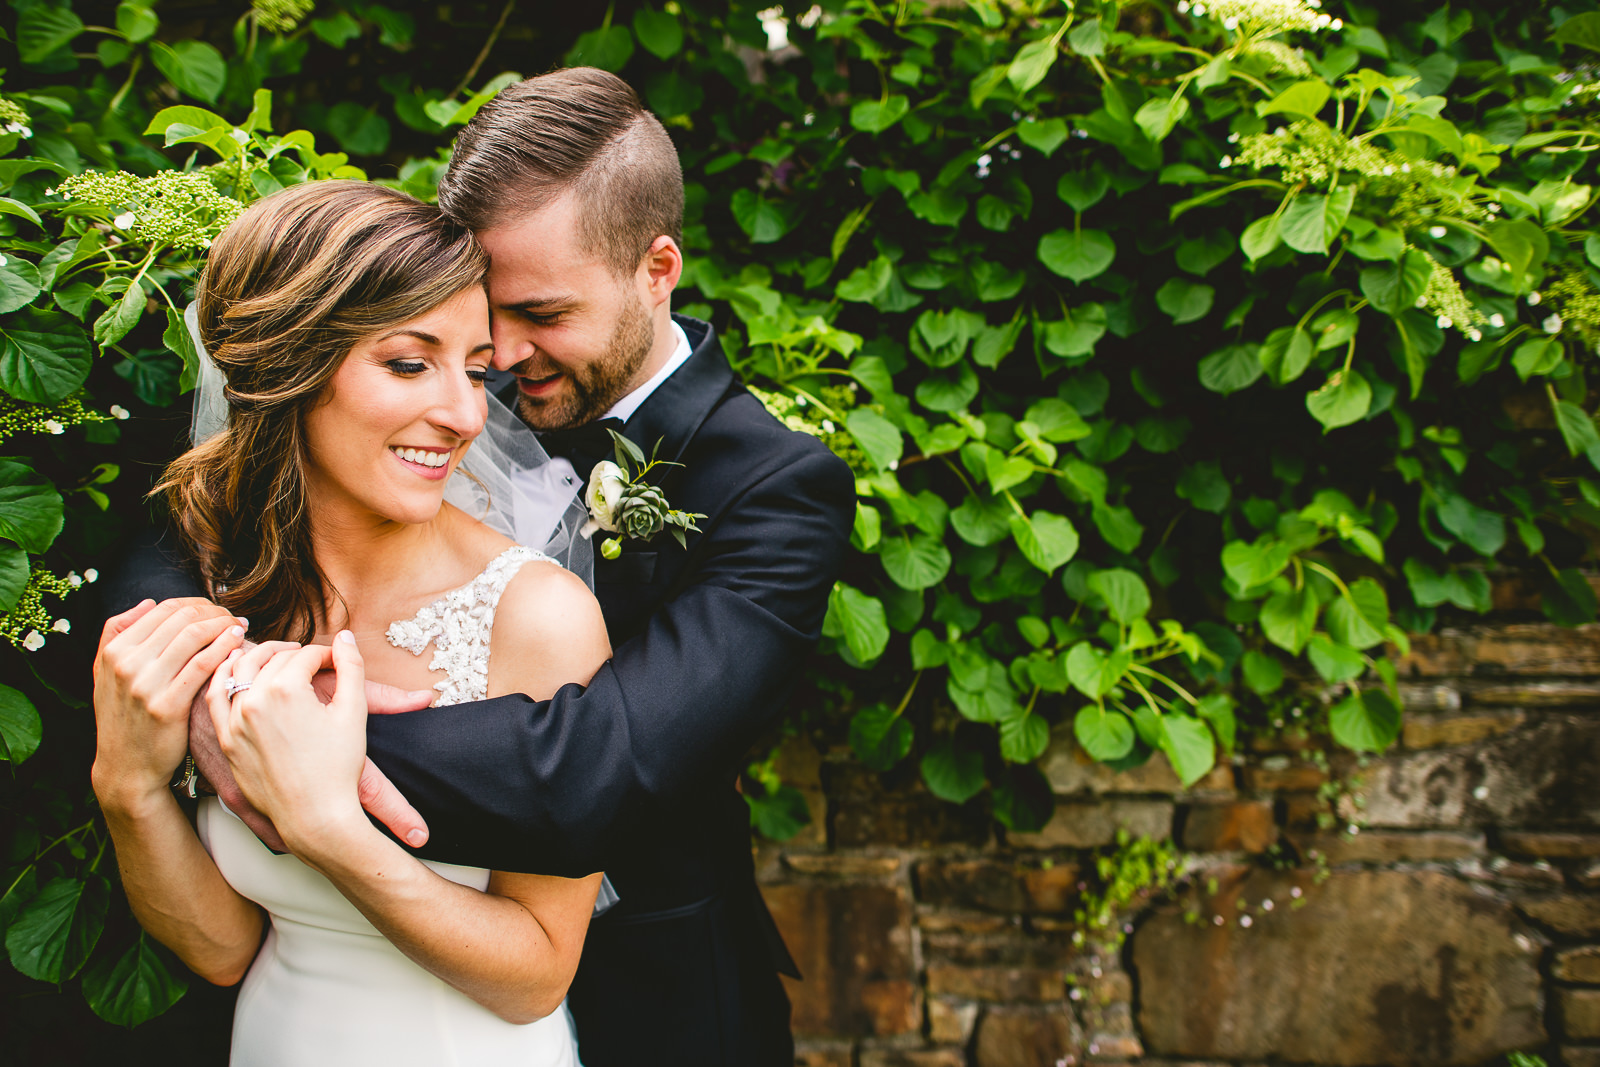 38 best wedding photos at club of hillbrook - Club of Hillbrook Wedding // Jenna + Ben